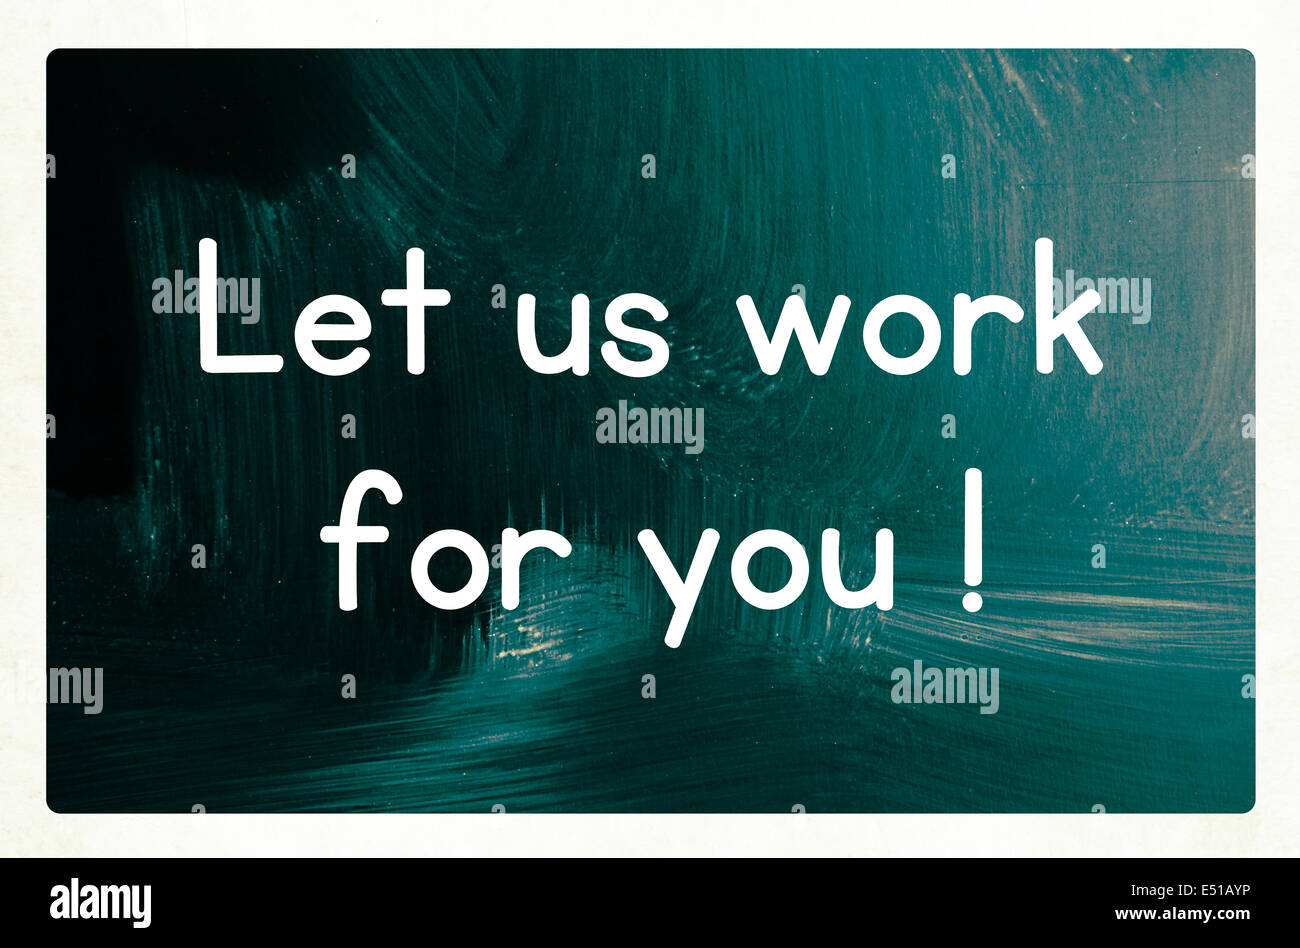 let us work for you concept - Stock Image